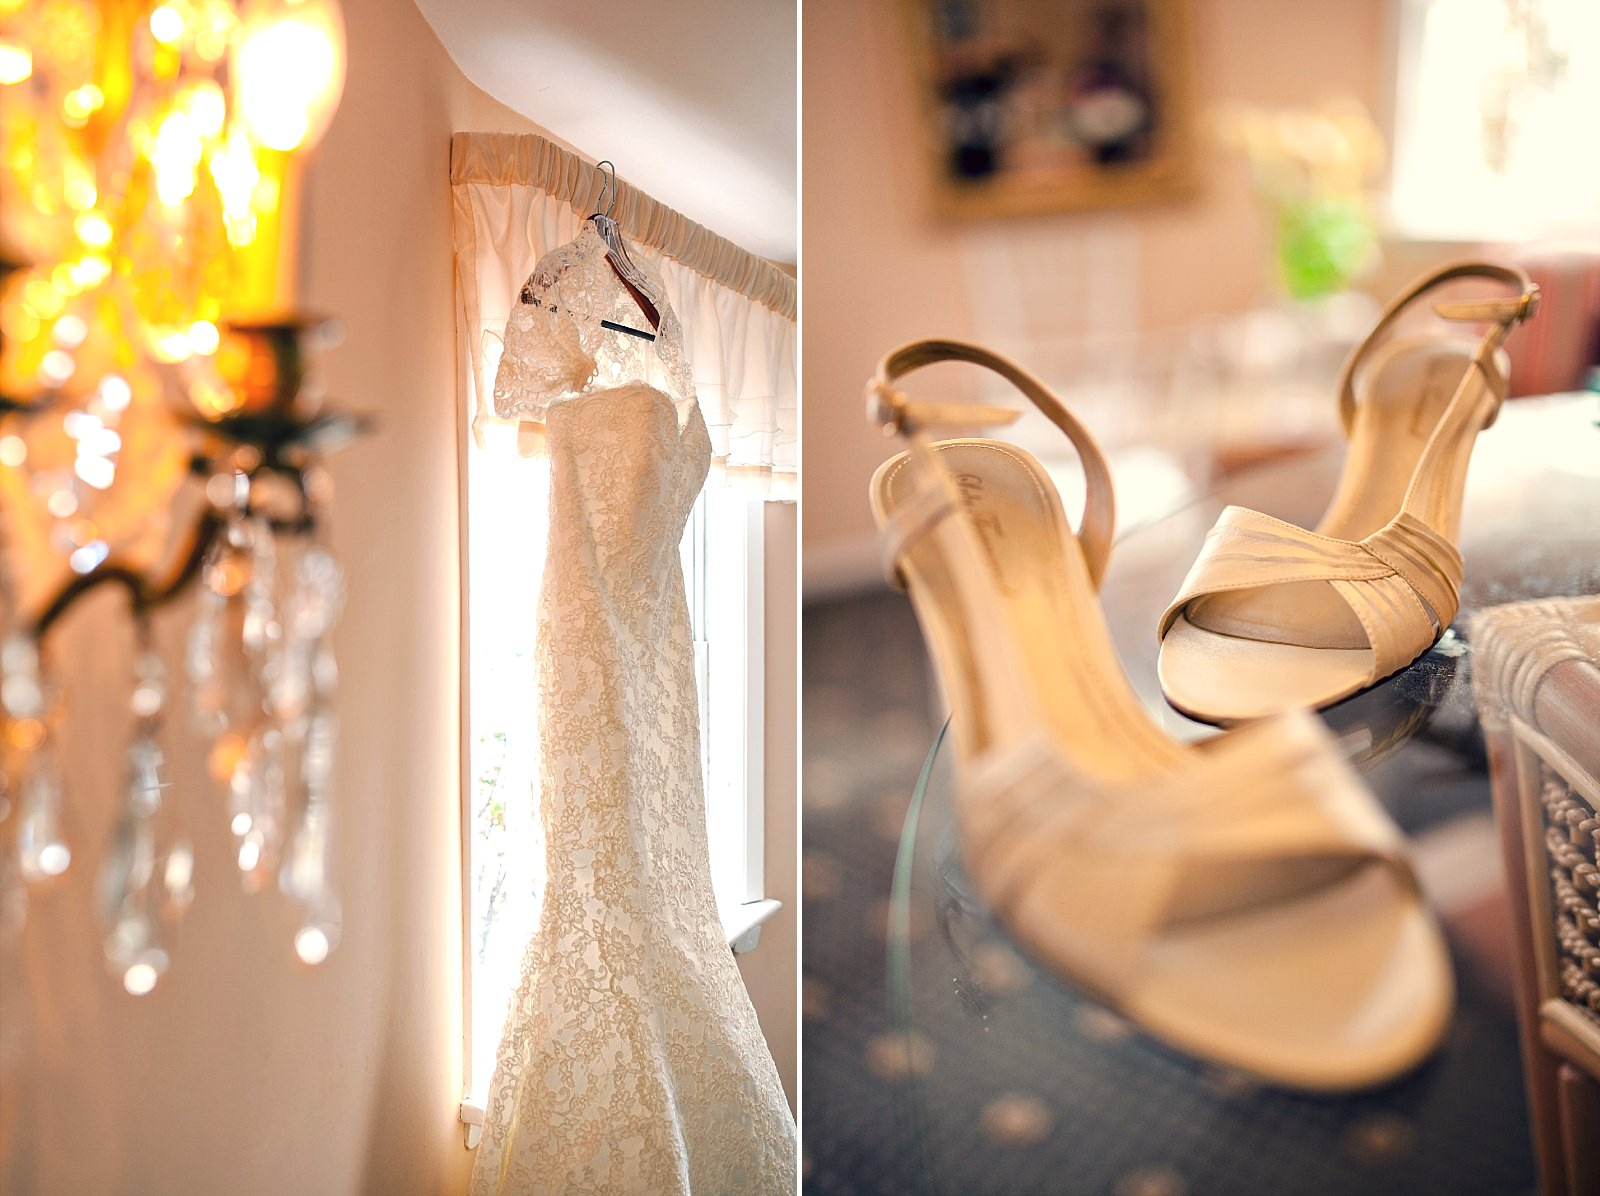 NY_Wedding_Photographer_KaJo_03.jpg